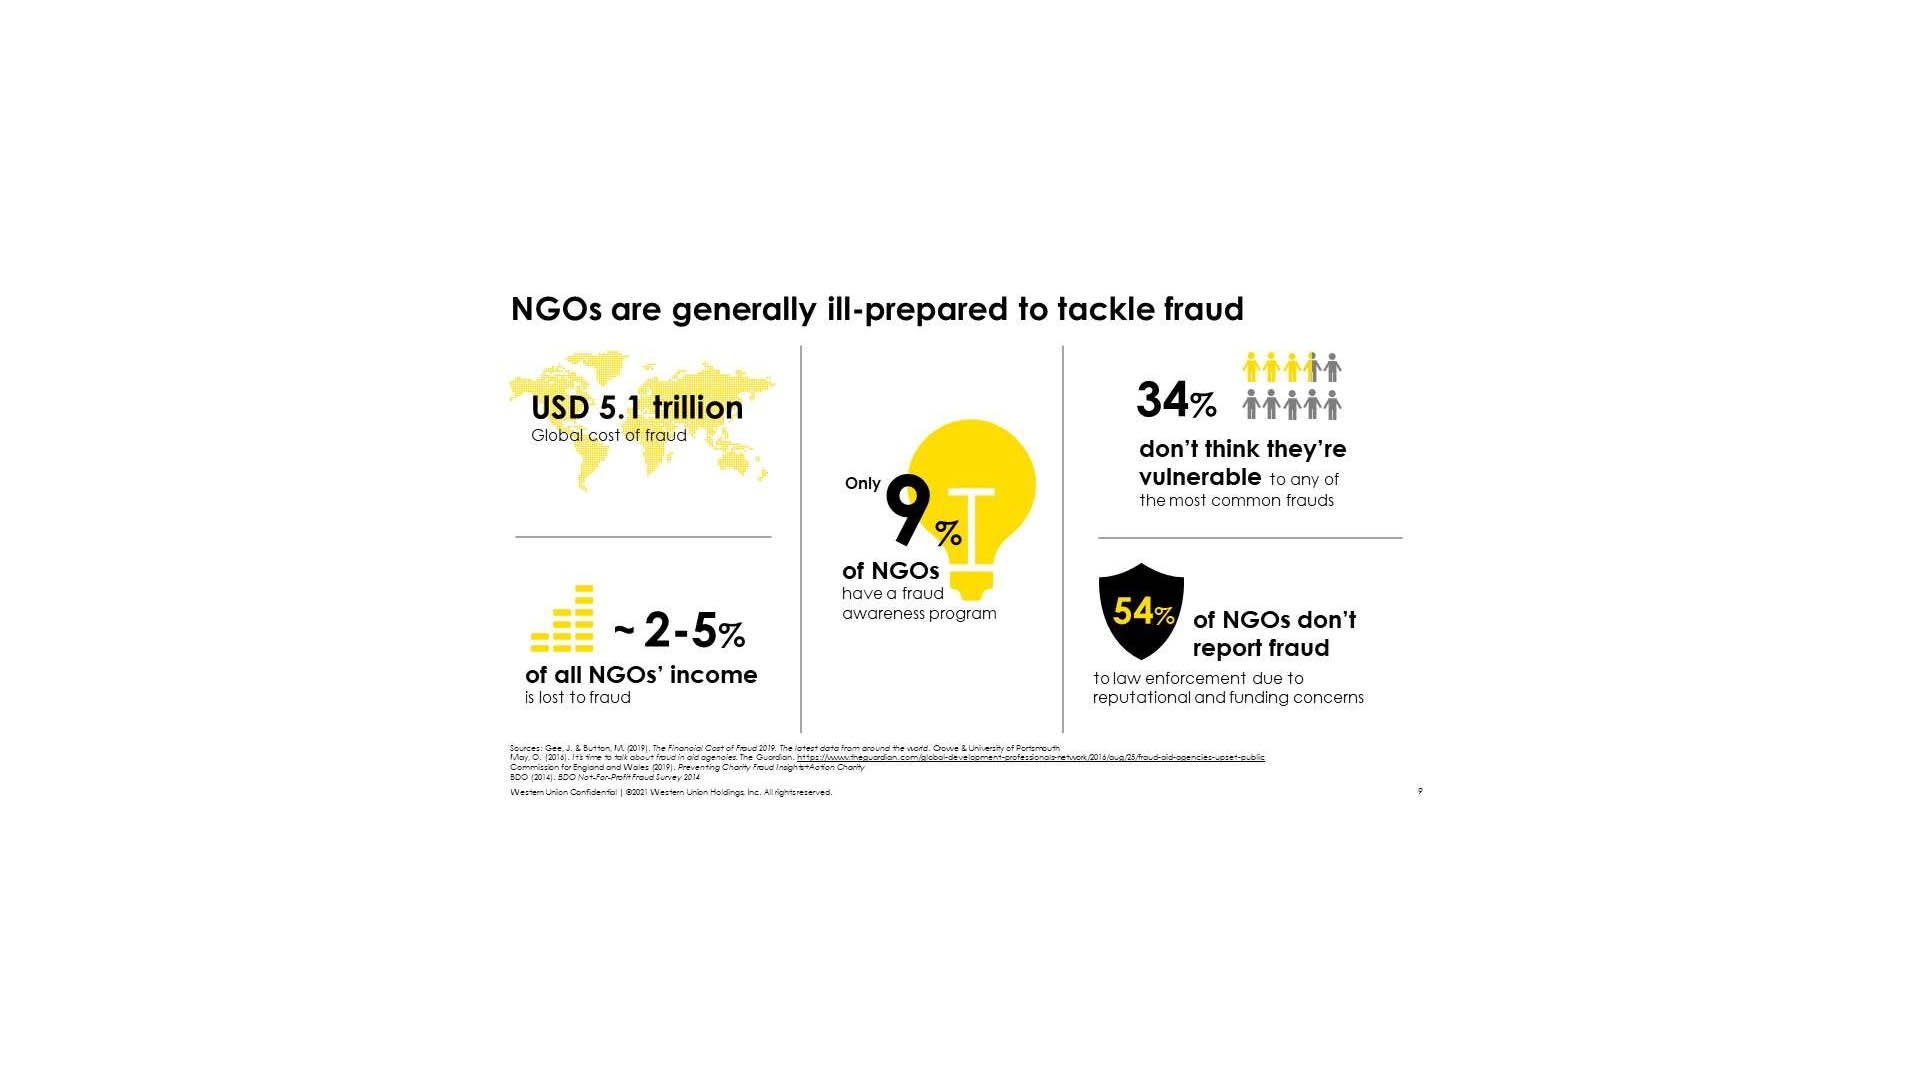 What NGOs need to know to prevent fraudulent activities?